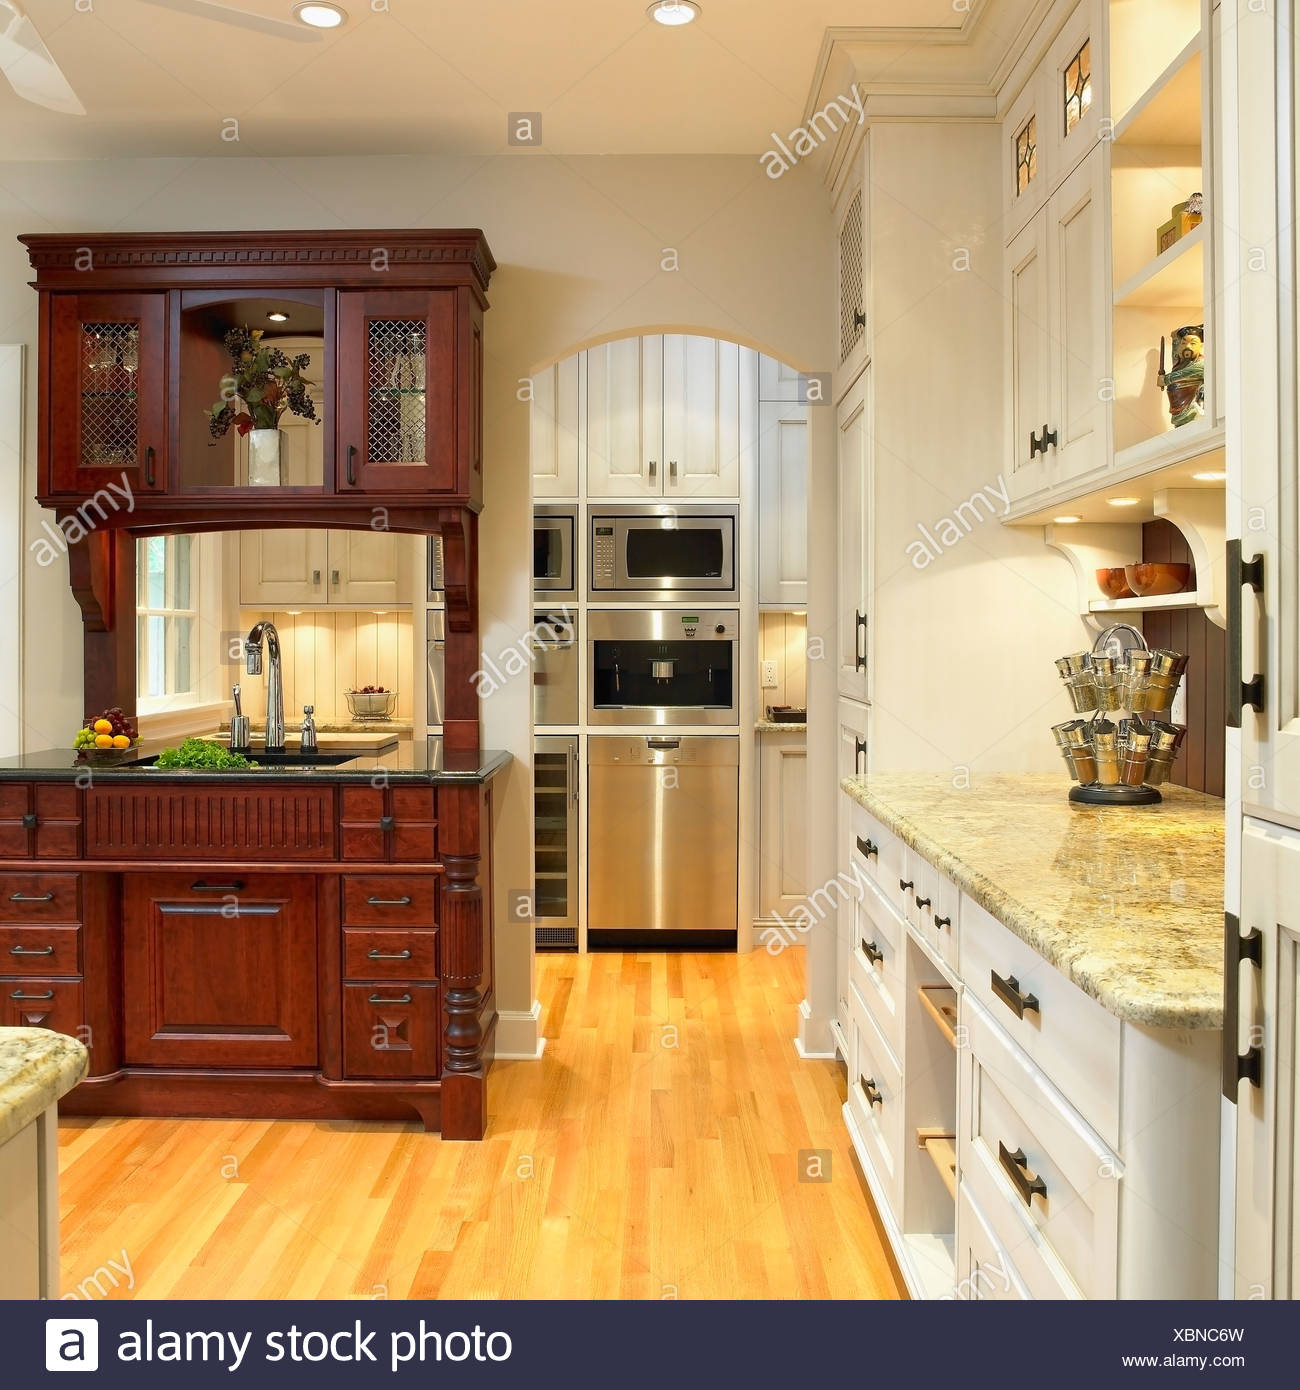 Traditional Kitchen With Cream Cabinets And Built In Dark Wood Hutch Victoria Vancouver Island British Columbia Canada Stock Photo Alamy